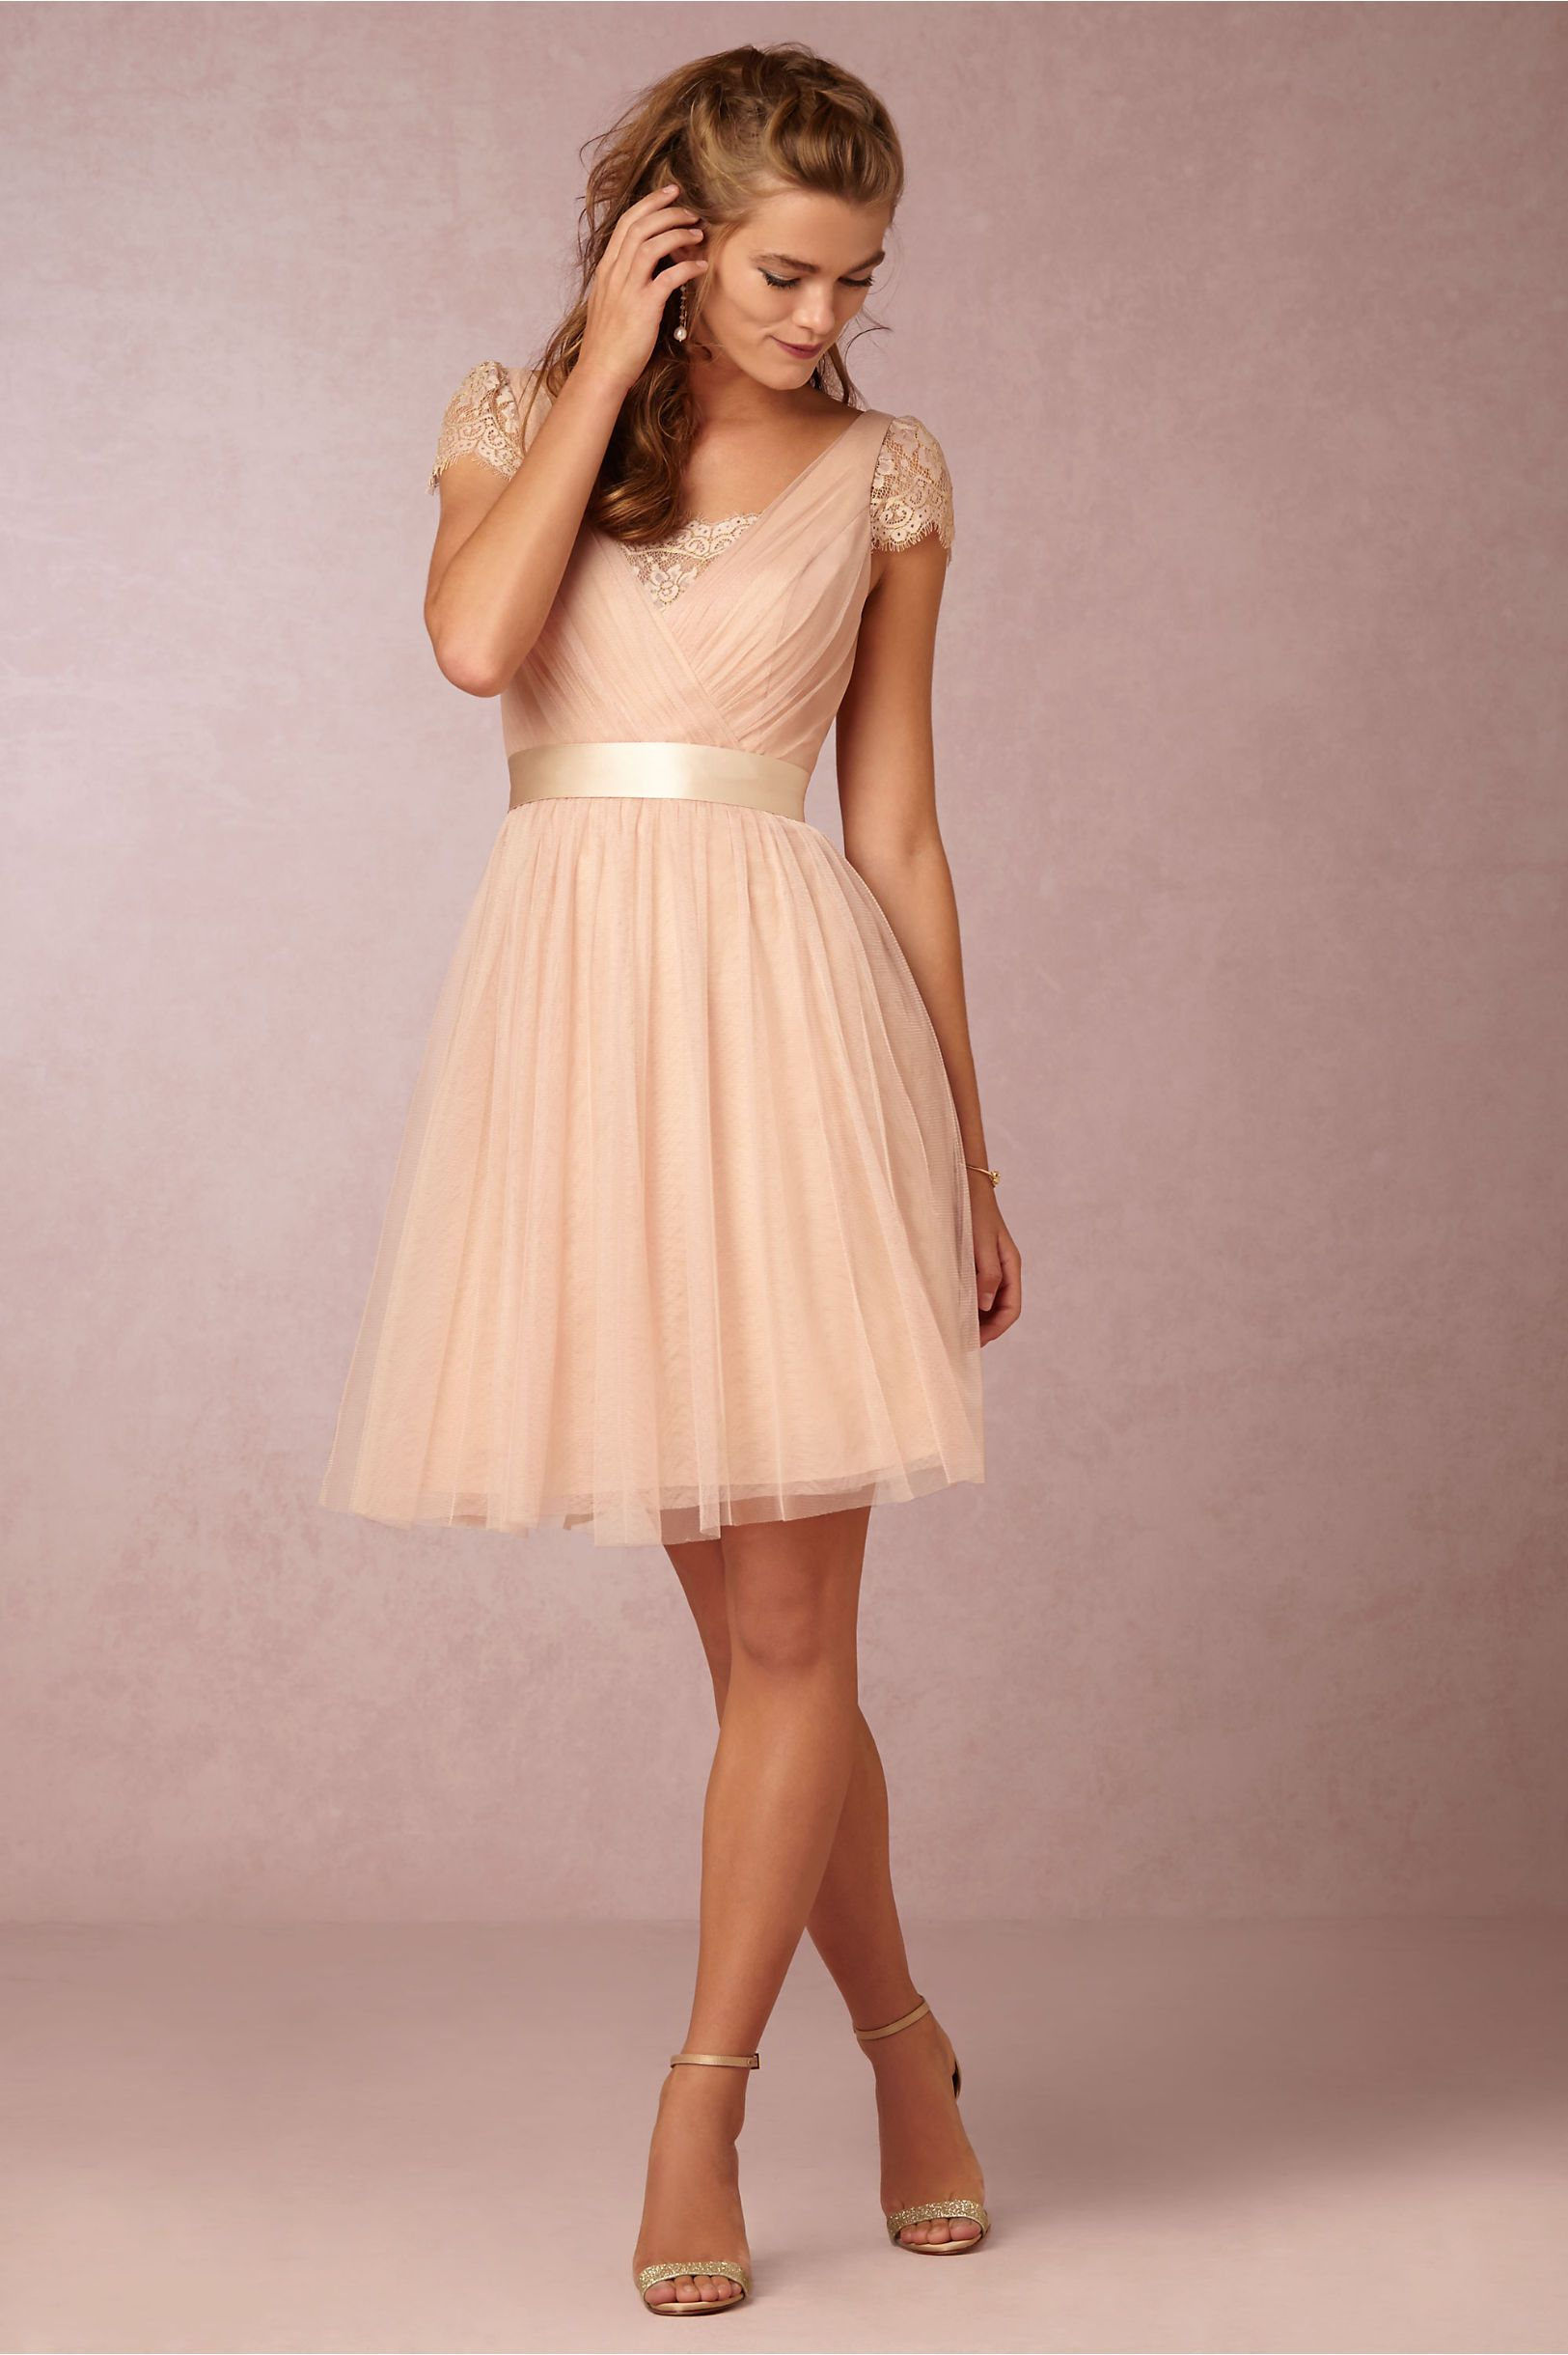 Ruby Bridesmaid Dress in cameo pink from BHLDN #wedding Style tips ...